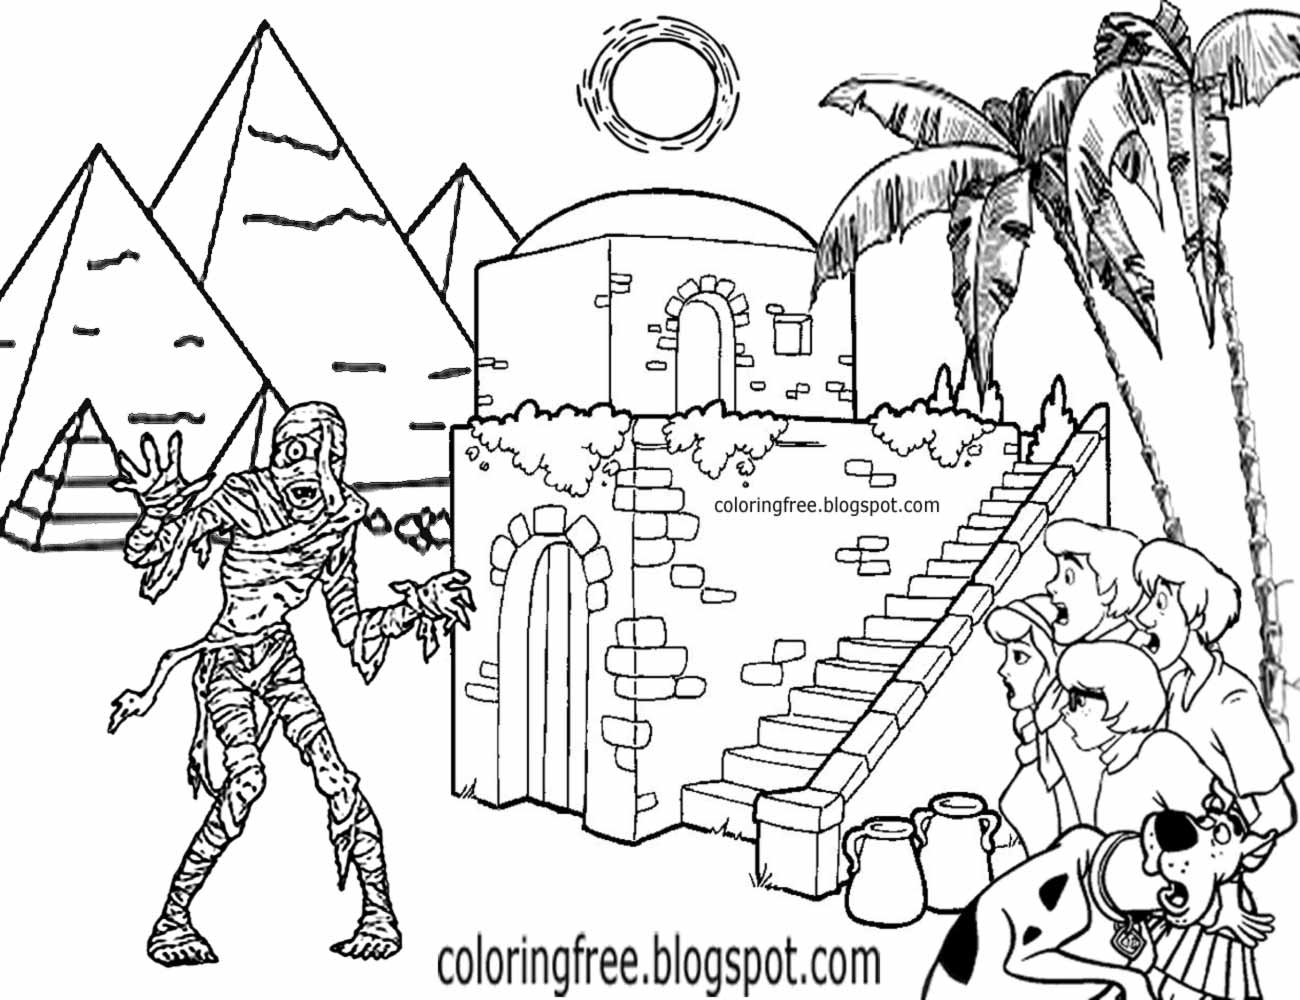 ancient egypt mummy coloring pages eliolera - Ancient Egypt Mummy Coloring Pages